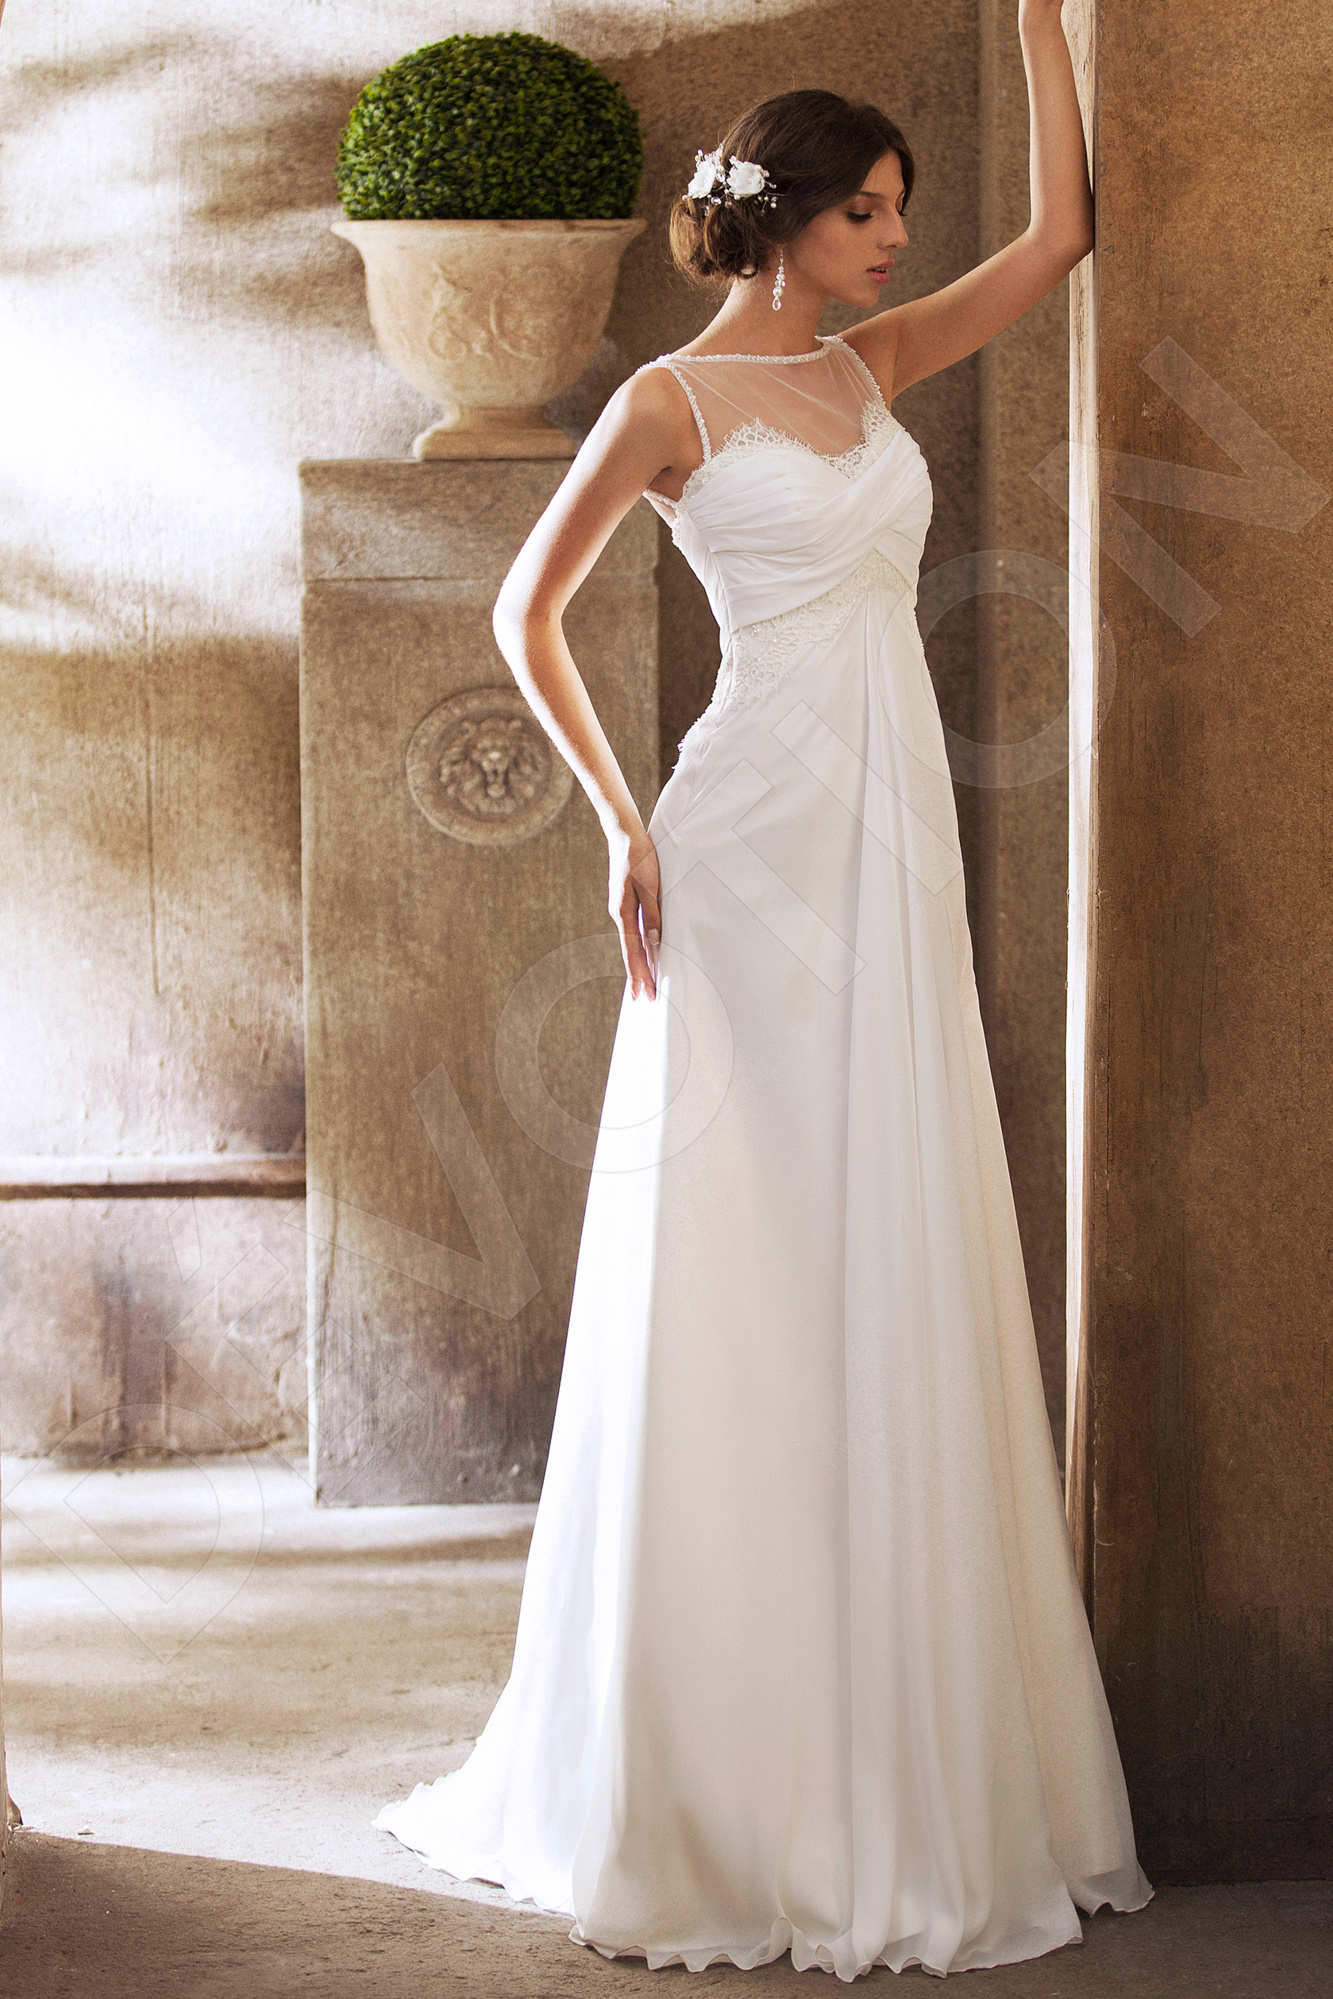 Ariana Elegant Chiffon Wedding dress White | Devotiondresses.com